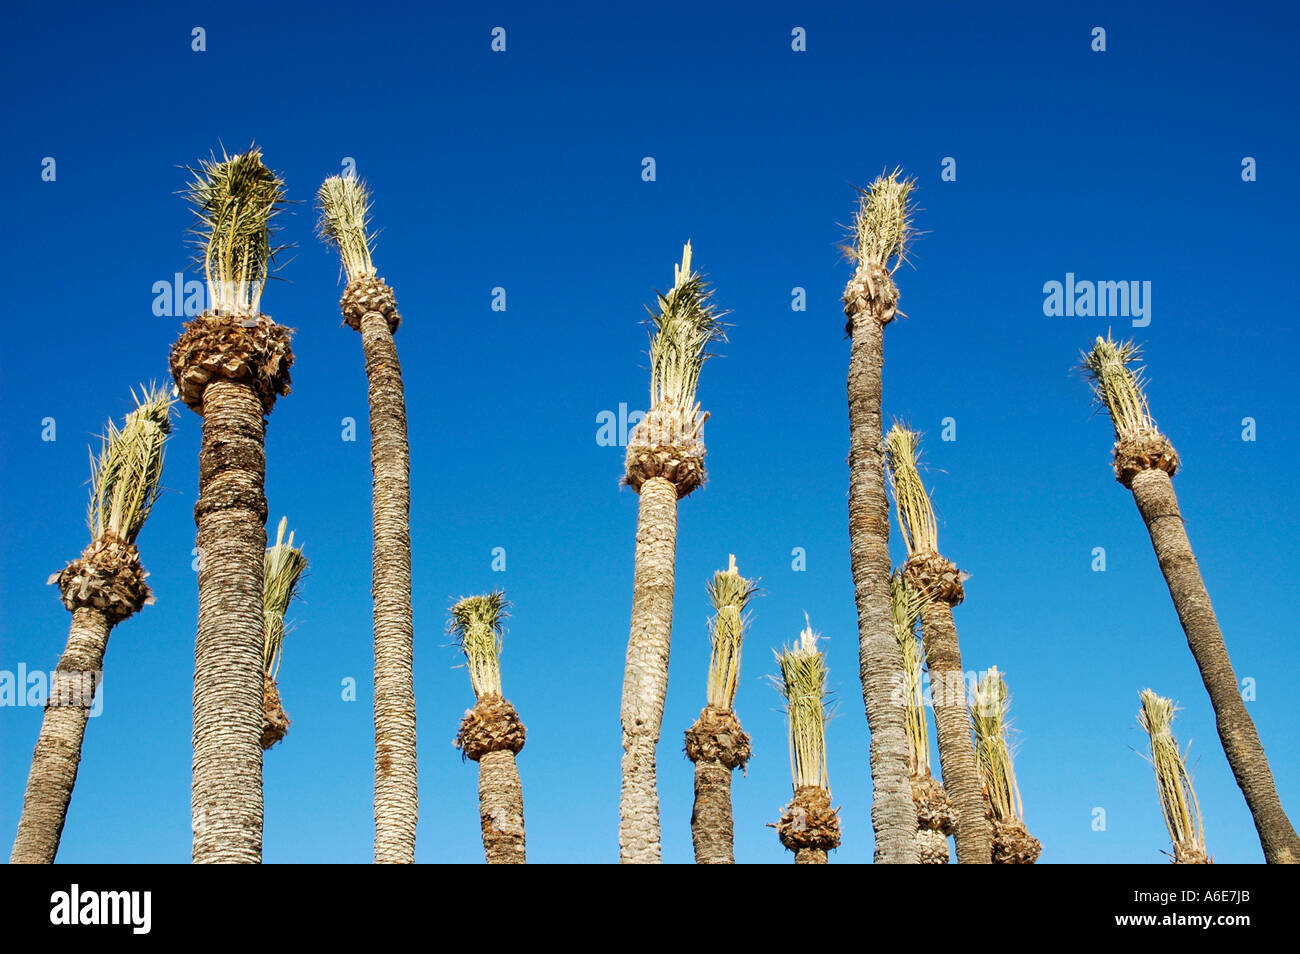 Freshly planted palm with palm fronds tied together in front of blue sky, Villajoyosa, Vila Joiosa, Costa Blanca, Spain - Stock Image